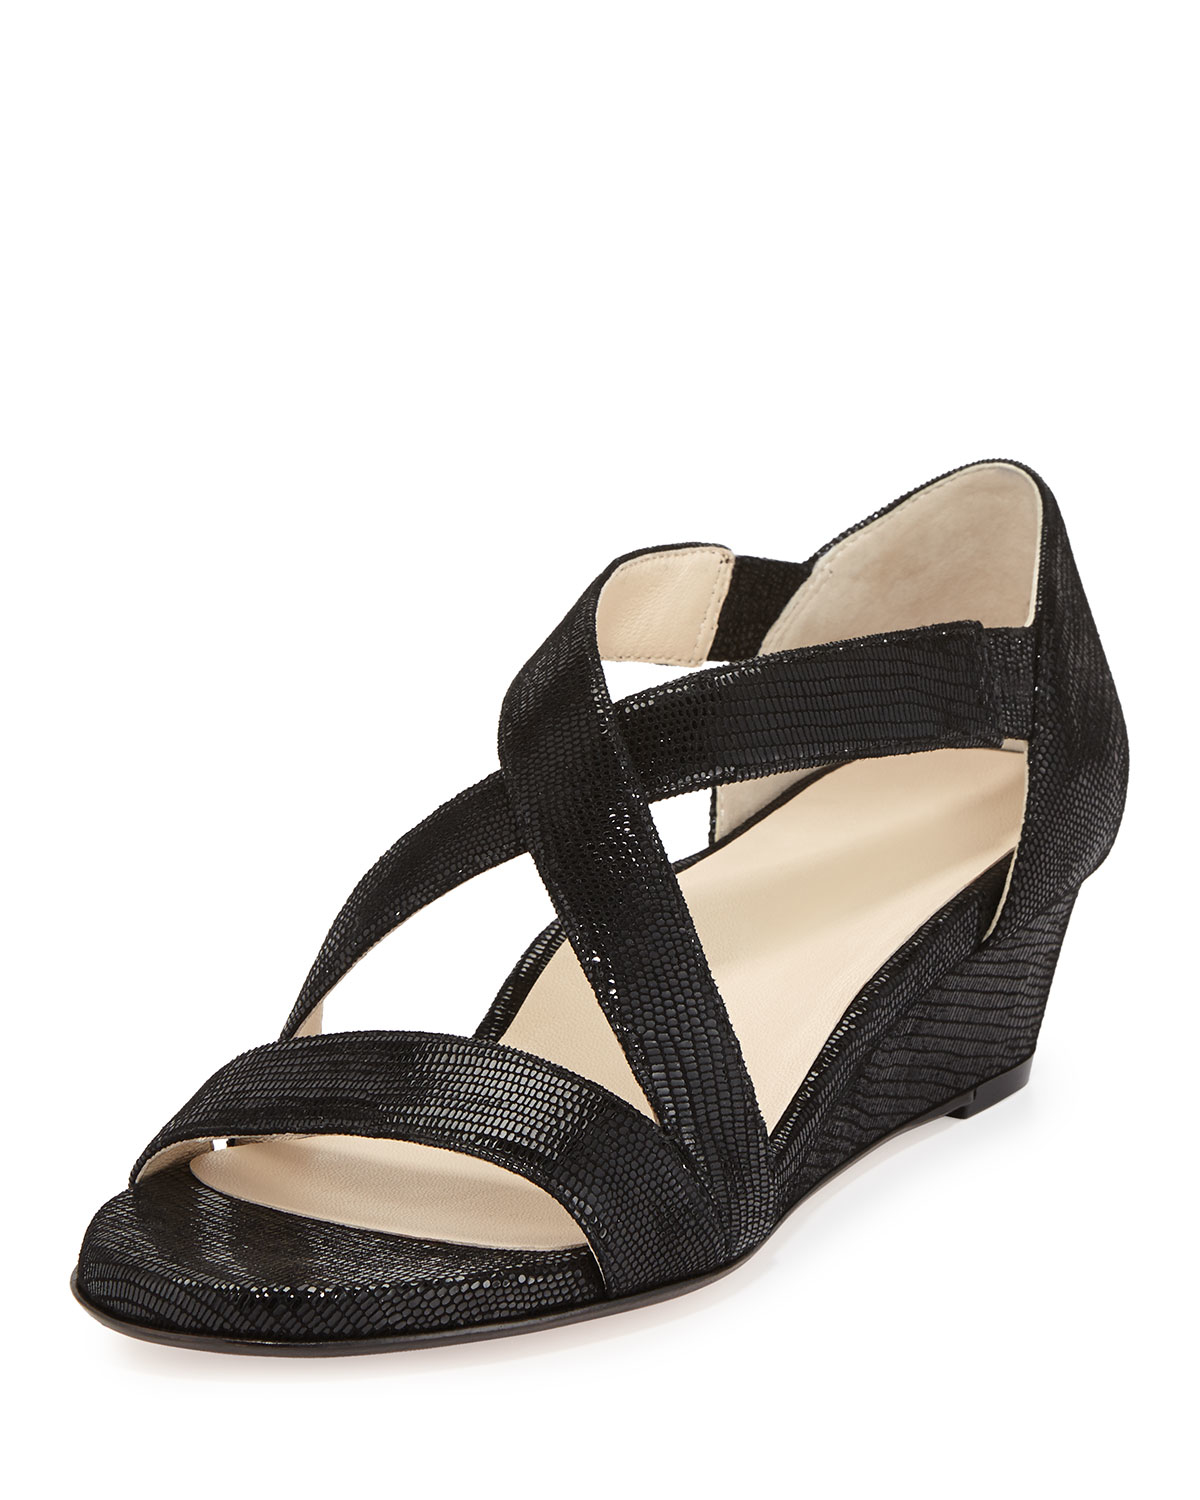 saraia low wedge sandals in black lyst